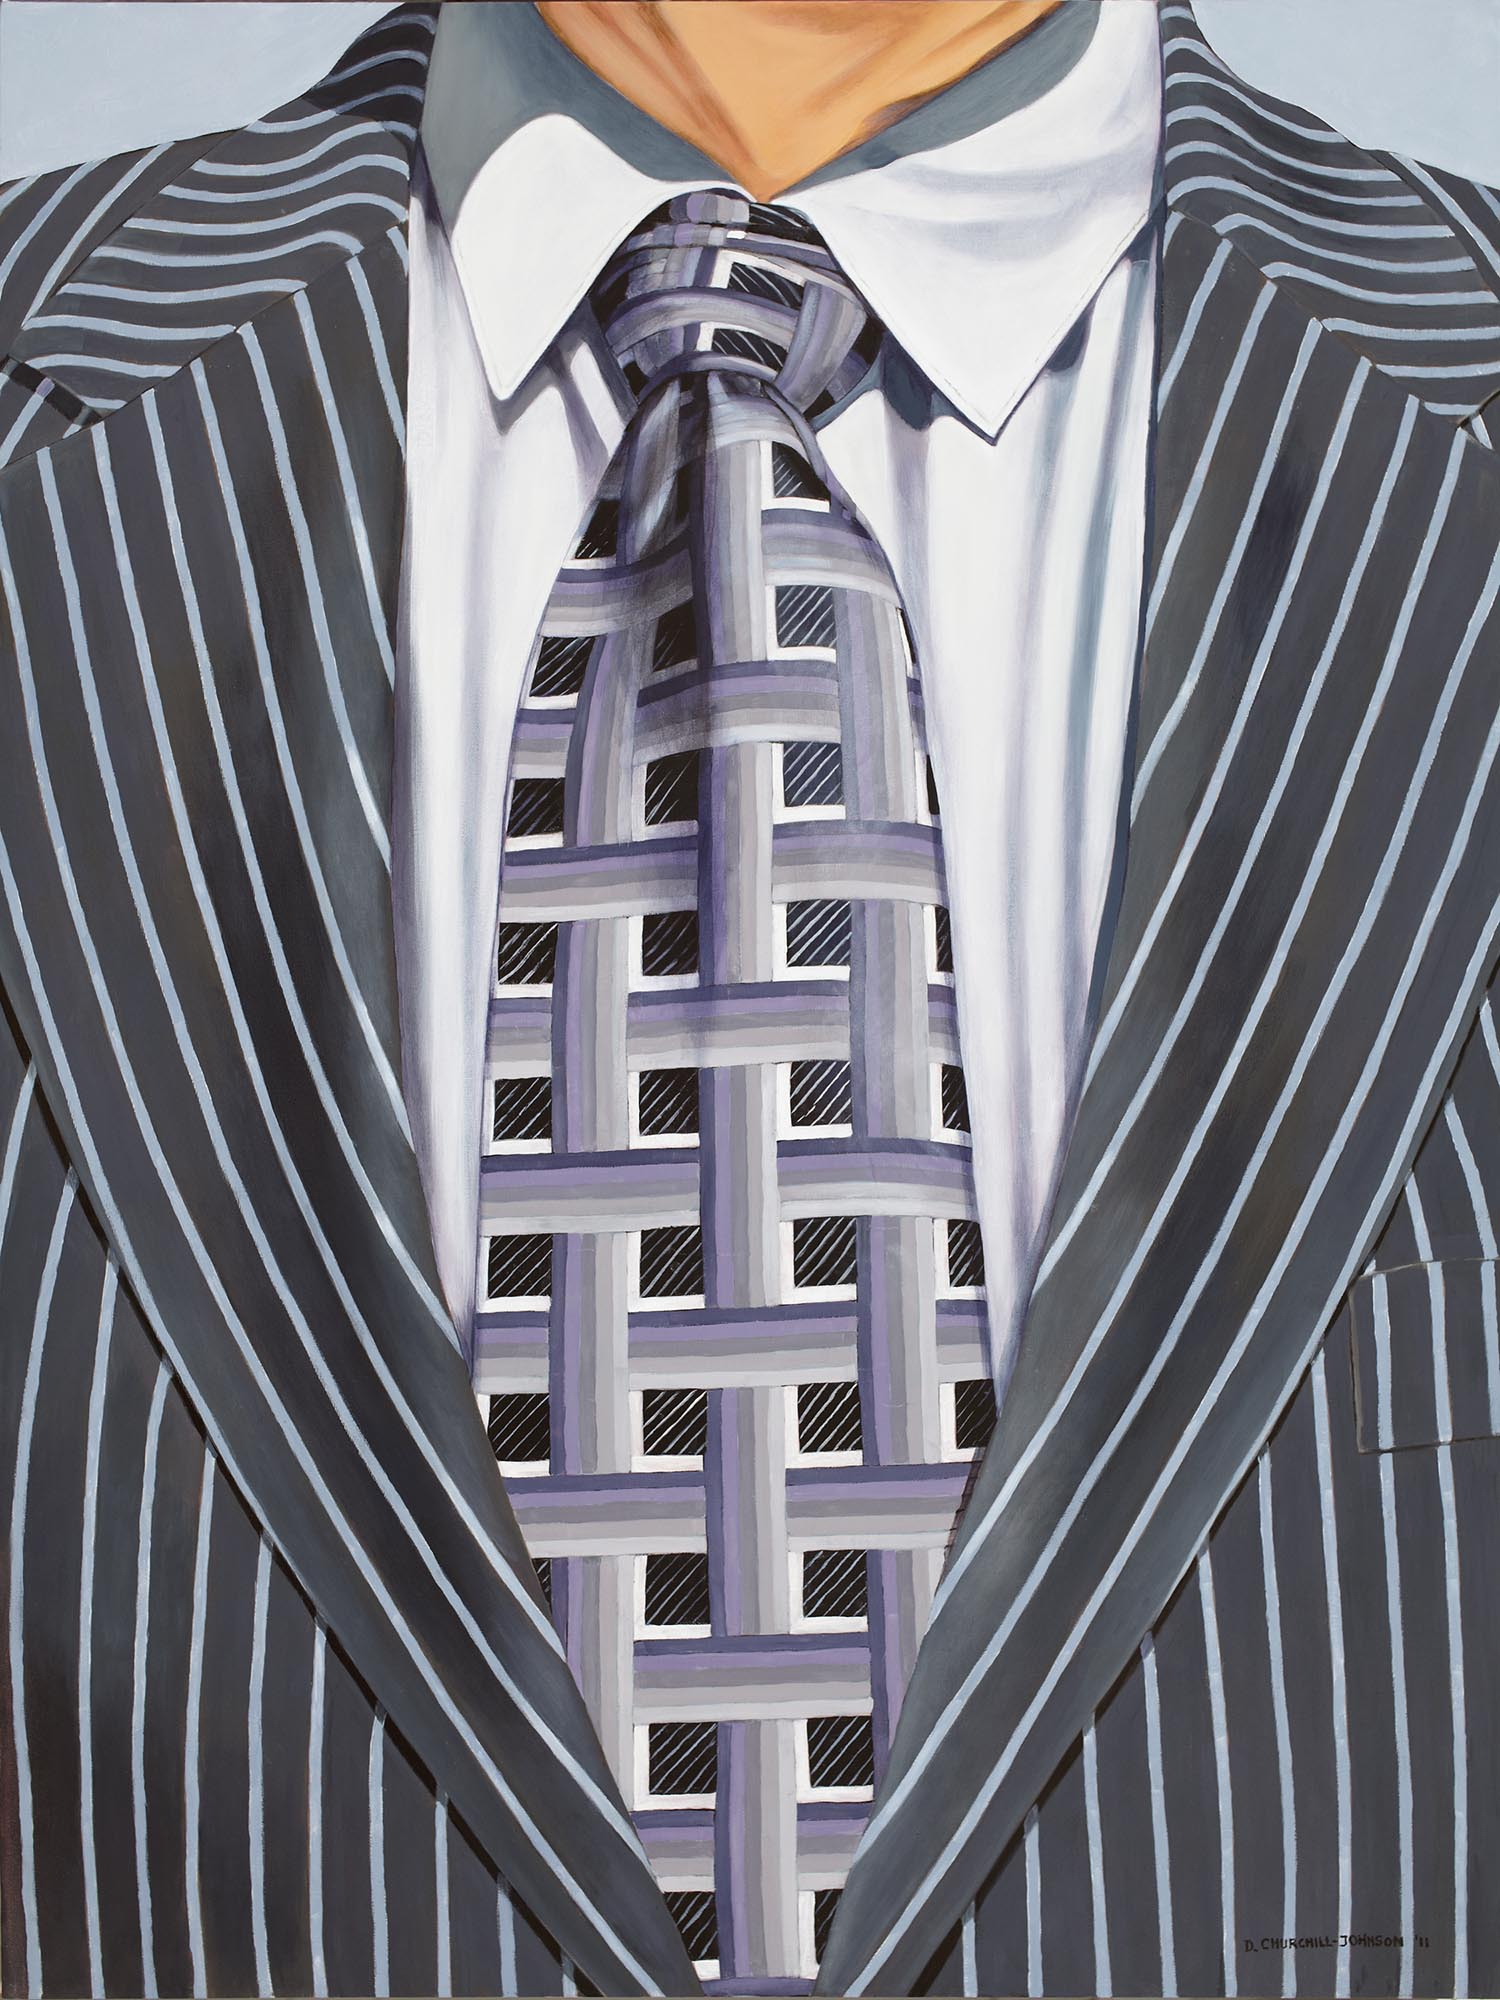 Suits: Joseph, 48 x 36 inches